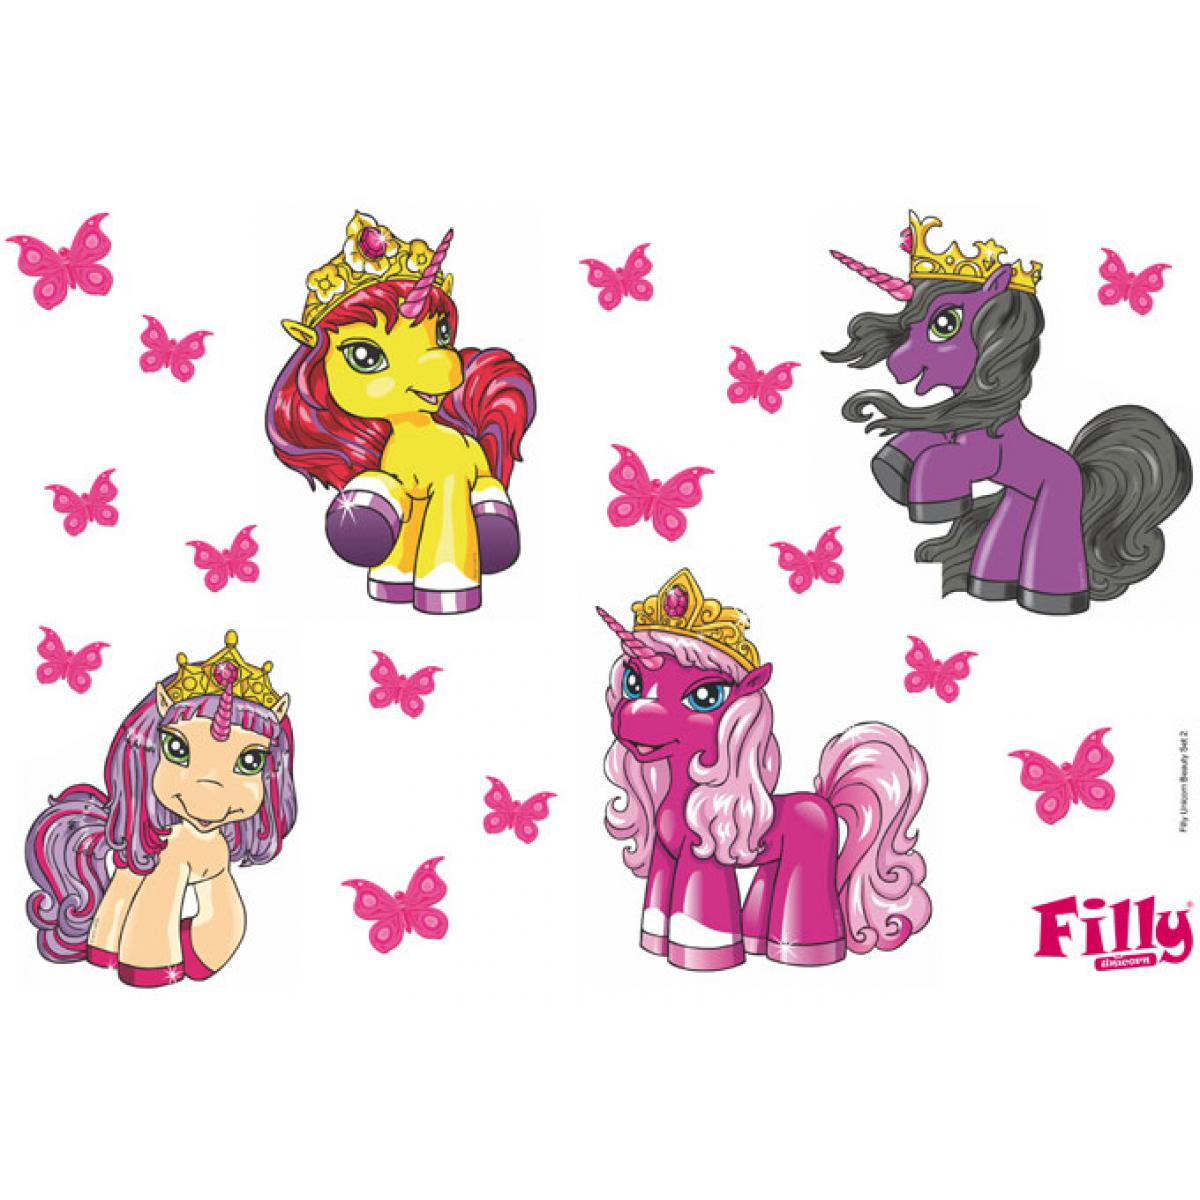 Filly Pferde Clipart 20 Free Cliparts Download Images On